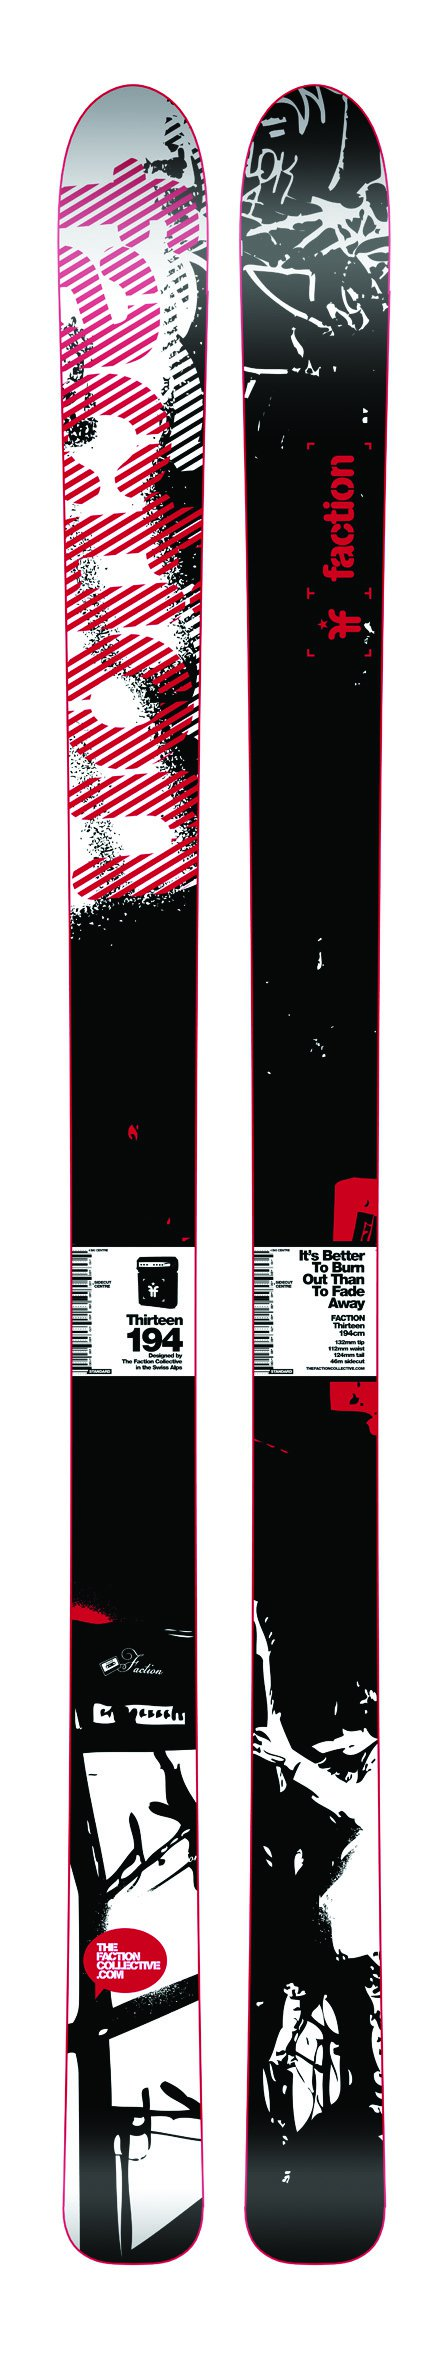 The Faction line of skis for 08/09 - 1 of 5